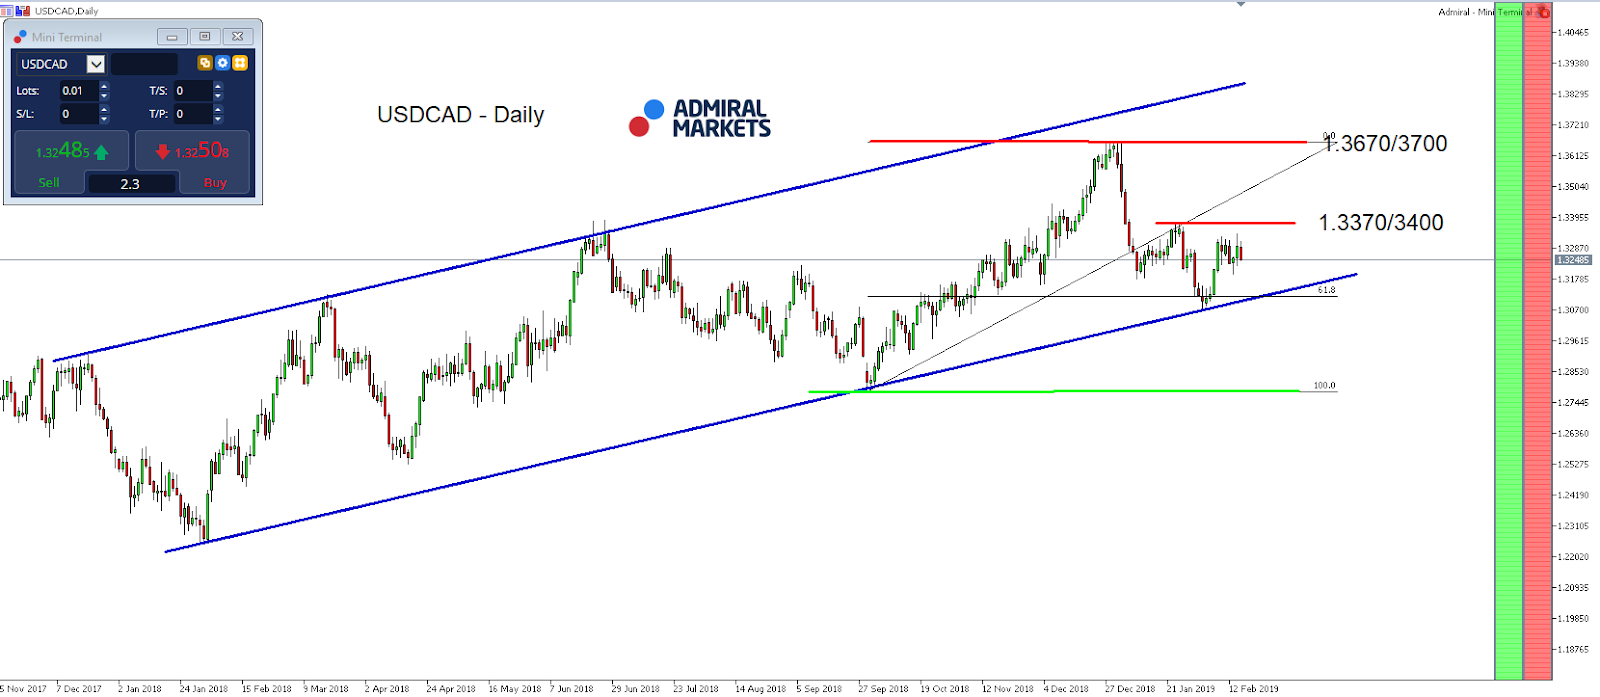 USD/CAD daily index chart